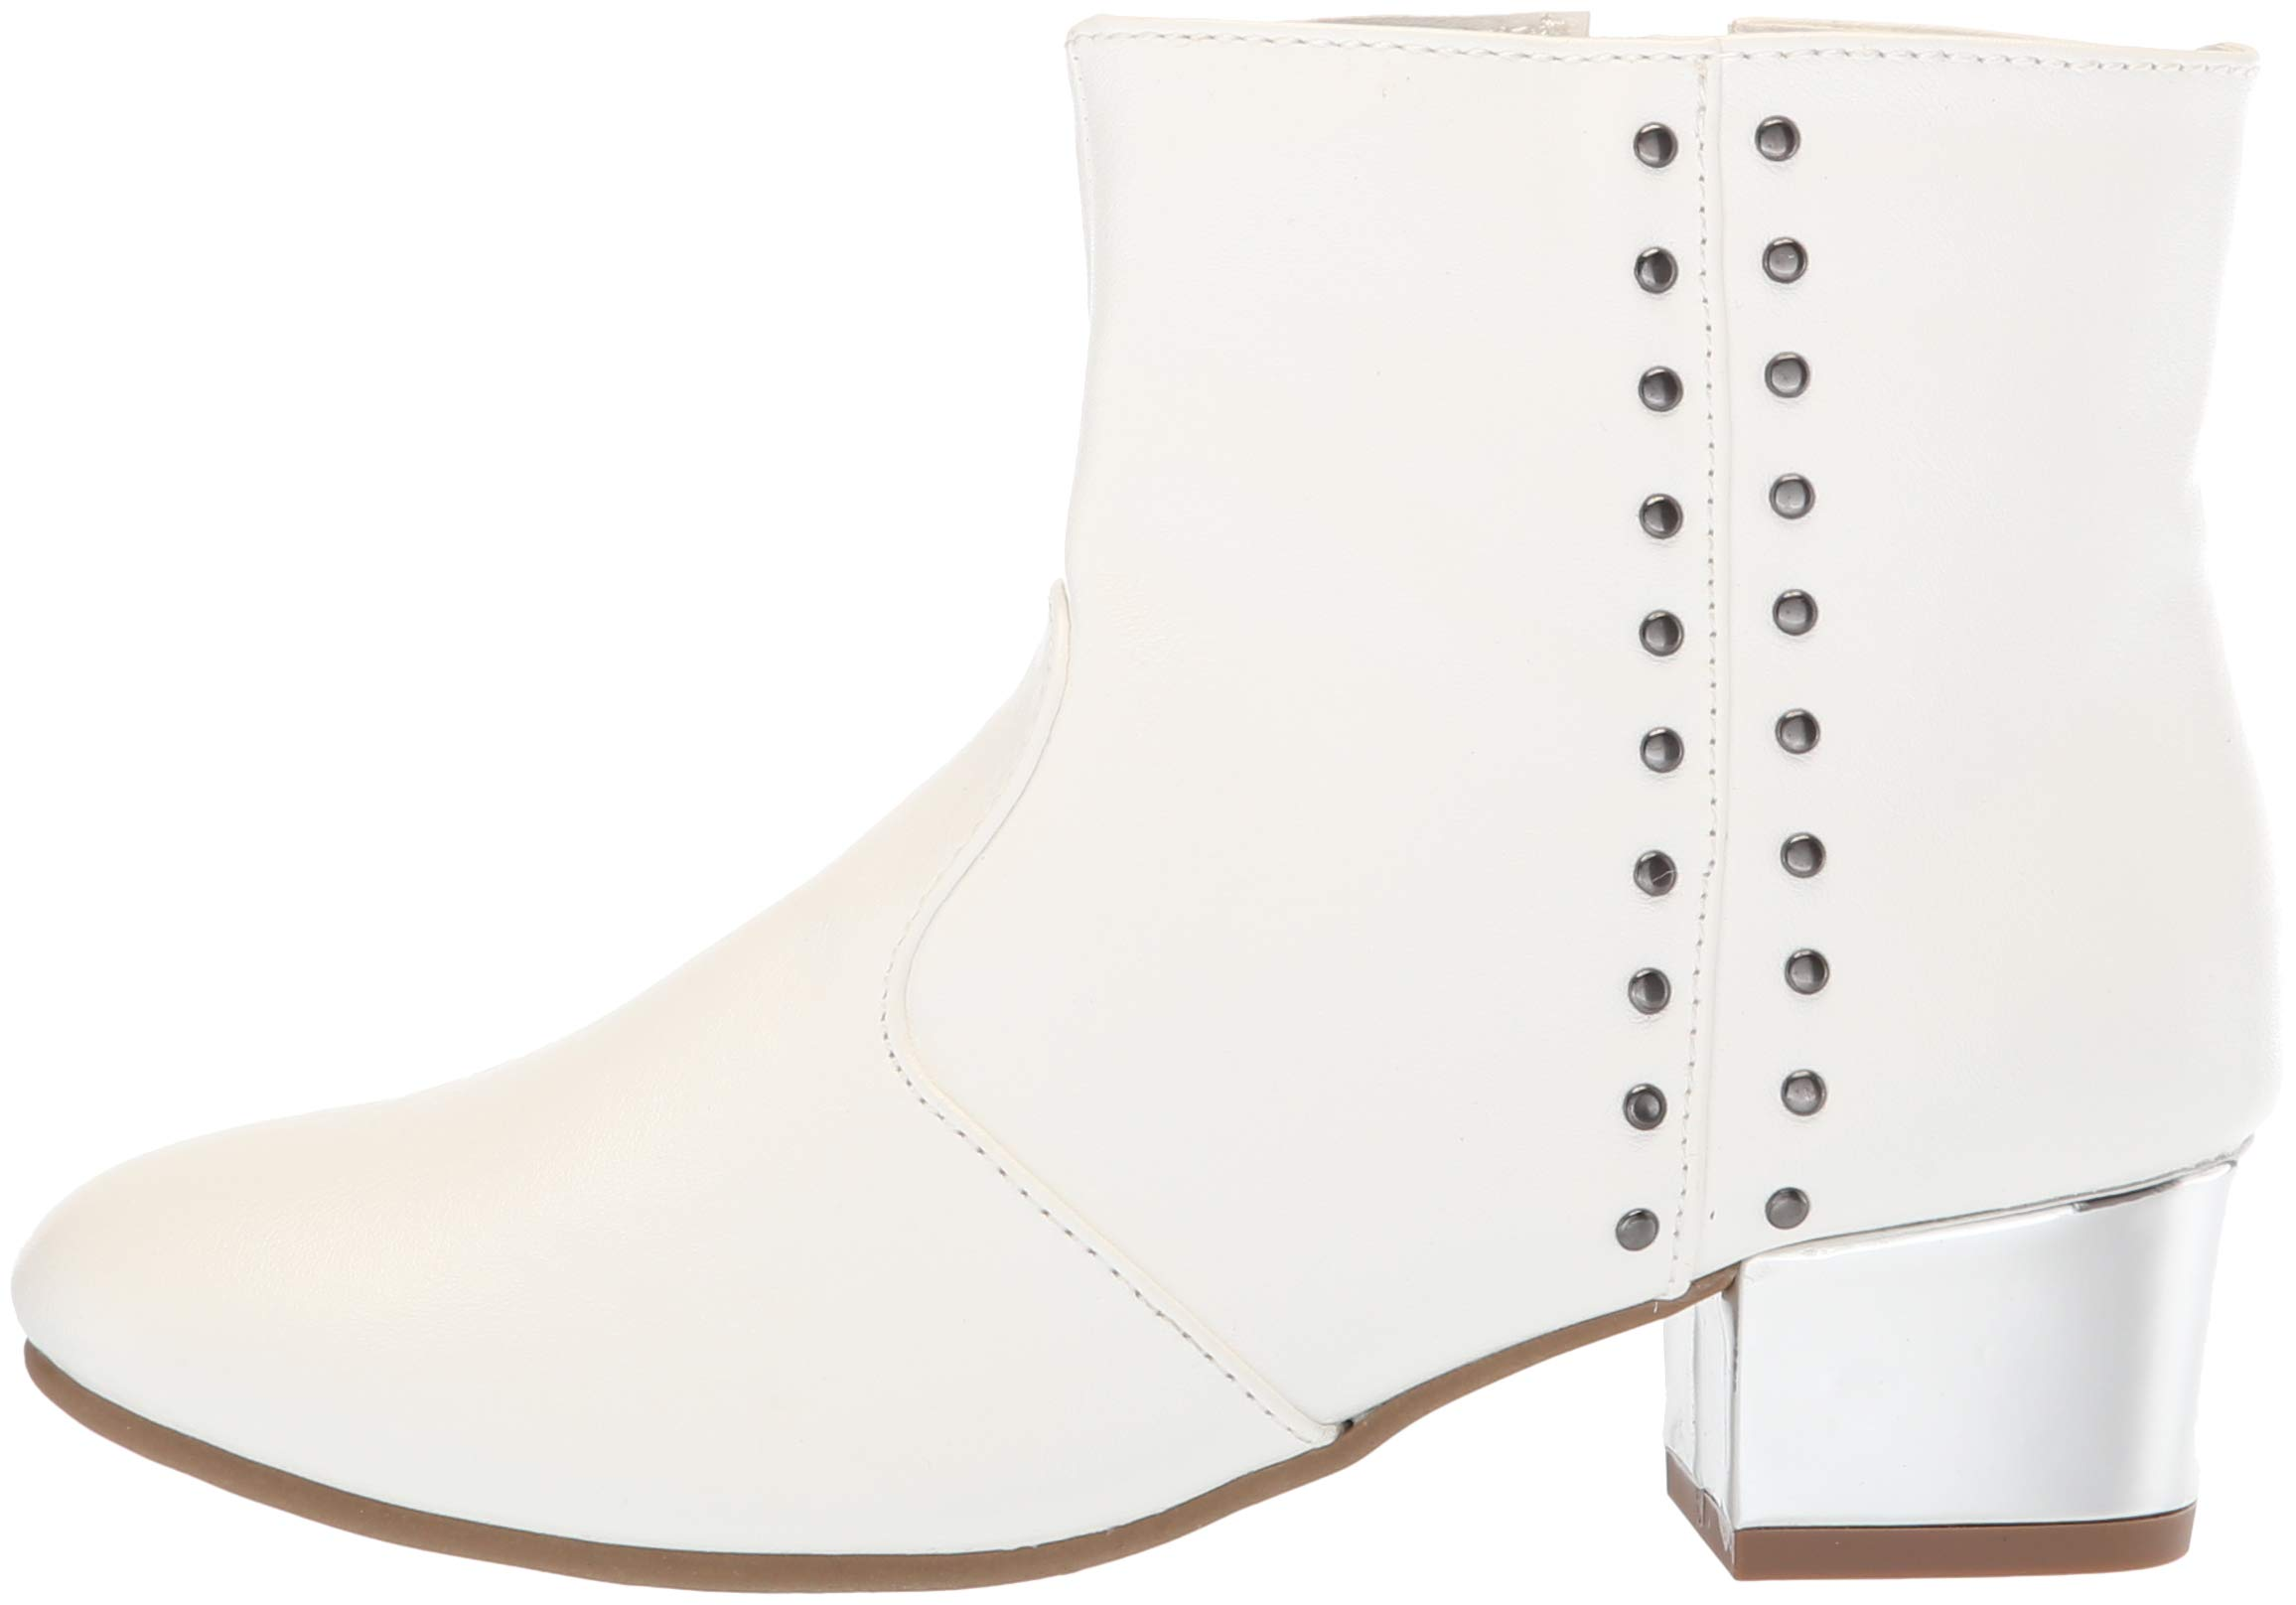 The Children's Place Girls' Bootie Fashion Boot, White, Youth 3 Child US Little Kid by The Children's Place (Image #5)